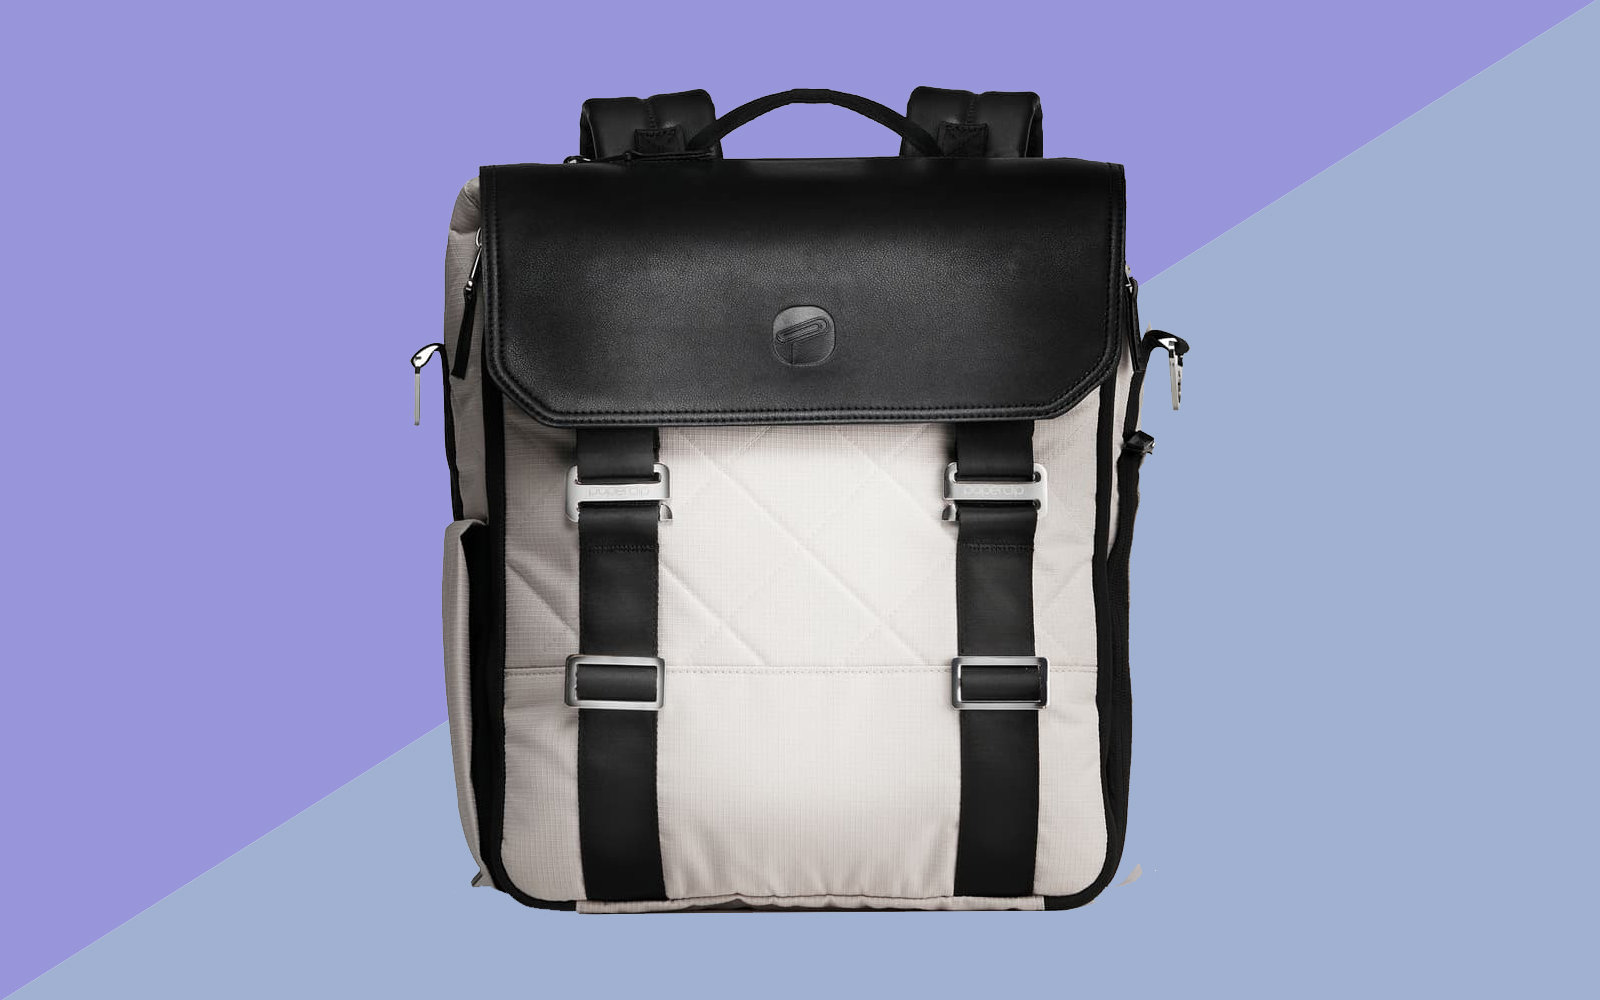 This Diaper Bag Is Made From Recycled Ocean Plastic And